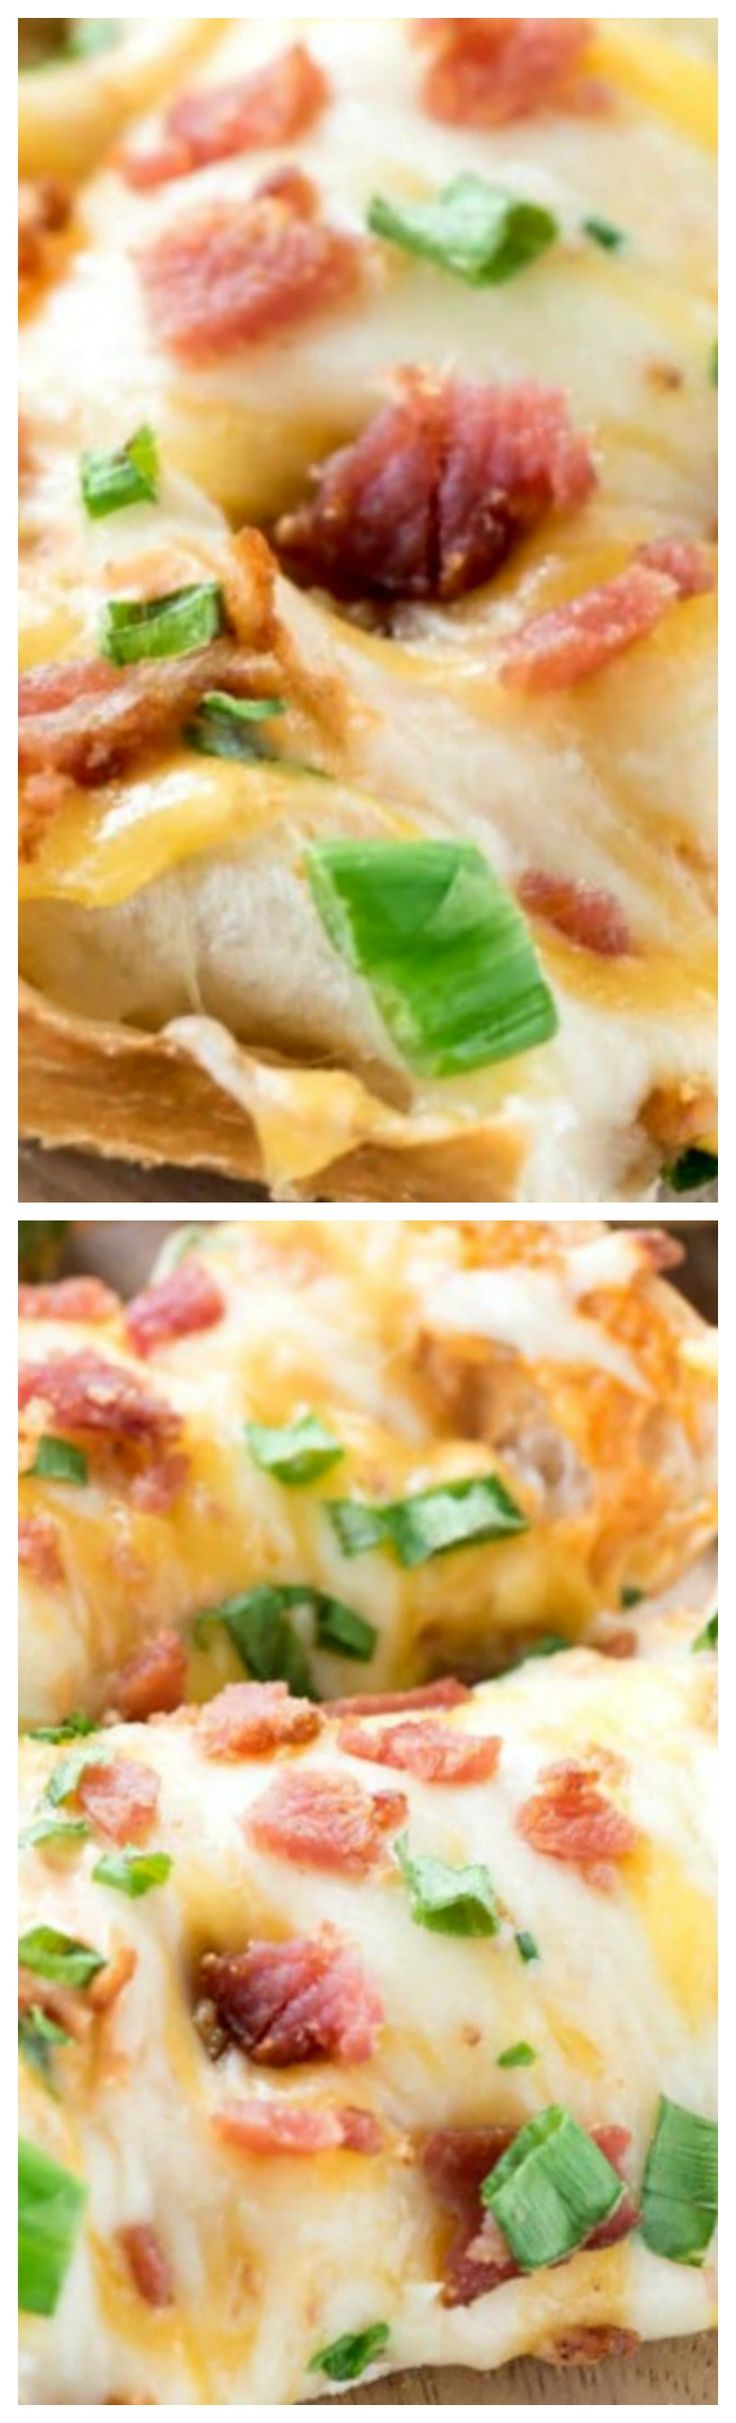 Cheesy Bacon Ranch French Bread Pizza – this easy dinner recipe combines ranch with PIZZA! Ranch is mixed with pizza sauce and topped with extra cheese and bacon. The perfect weeknight meal!